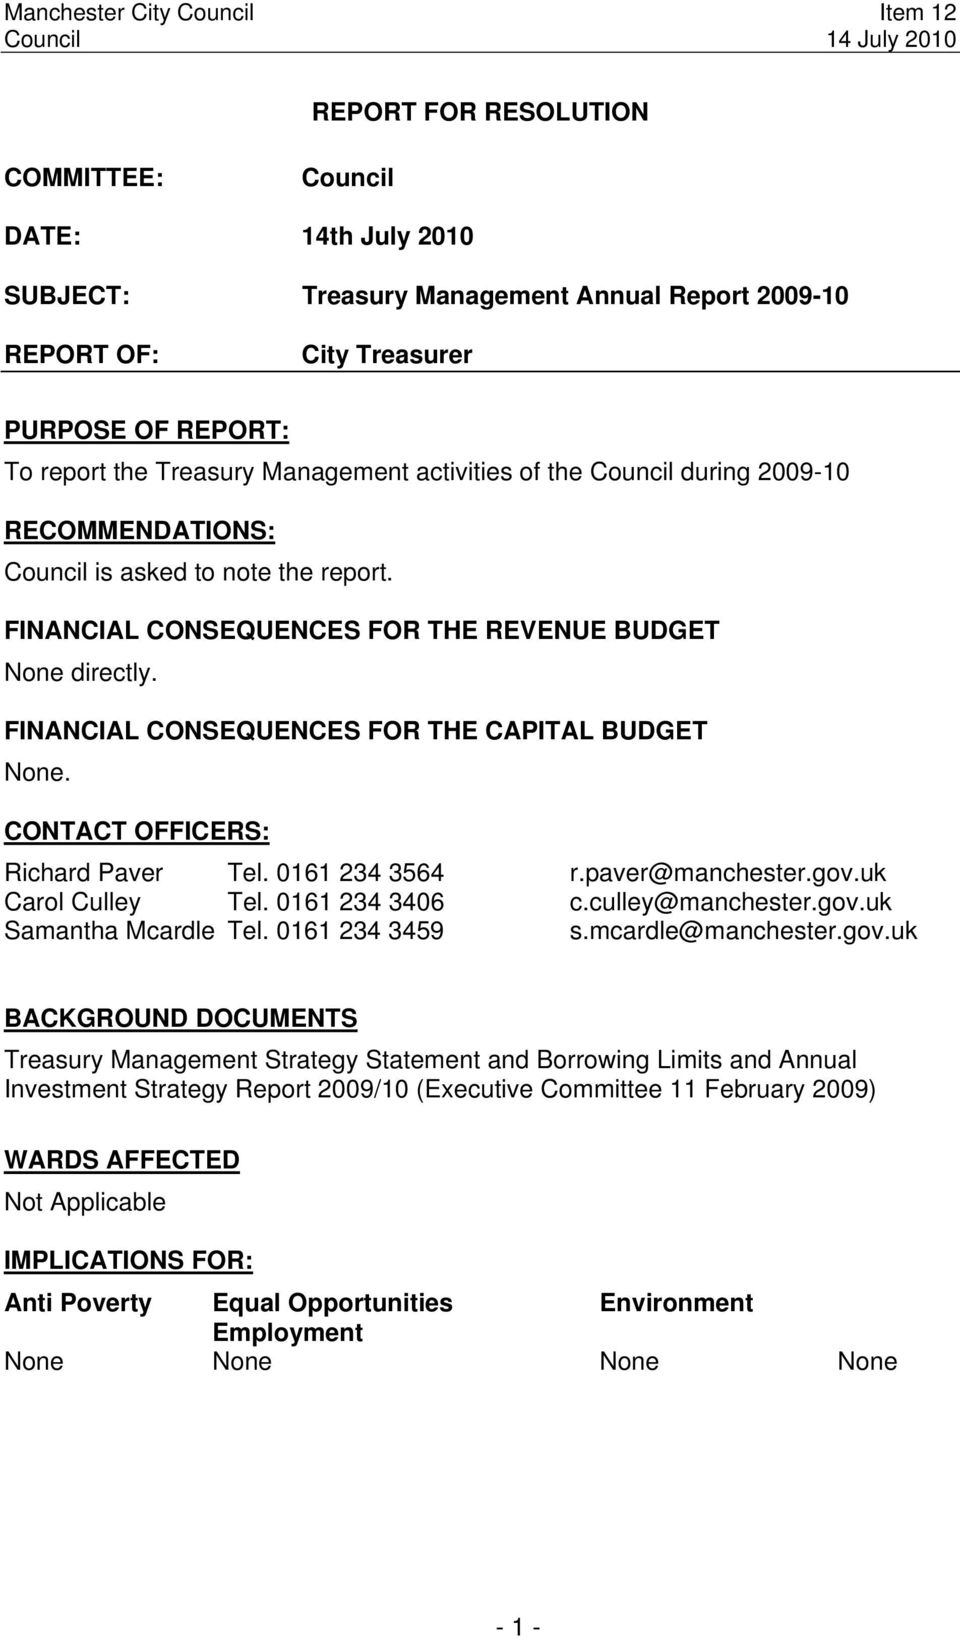 FINANCIAL CONSEQUENCES FOR THE CAPITAL BUDGET None. CONTACT OFFICERS: Richard Paver Tel. 0161 234 3564 r.paver@manchester.gov.uk Carol Culley Tel. 0161 234 3406 c.culley@manchester.gov.uk Samantha Mcardle Tel.